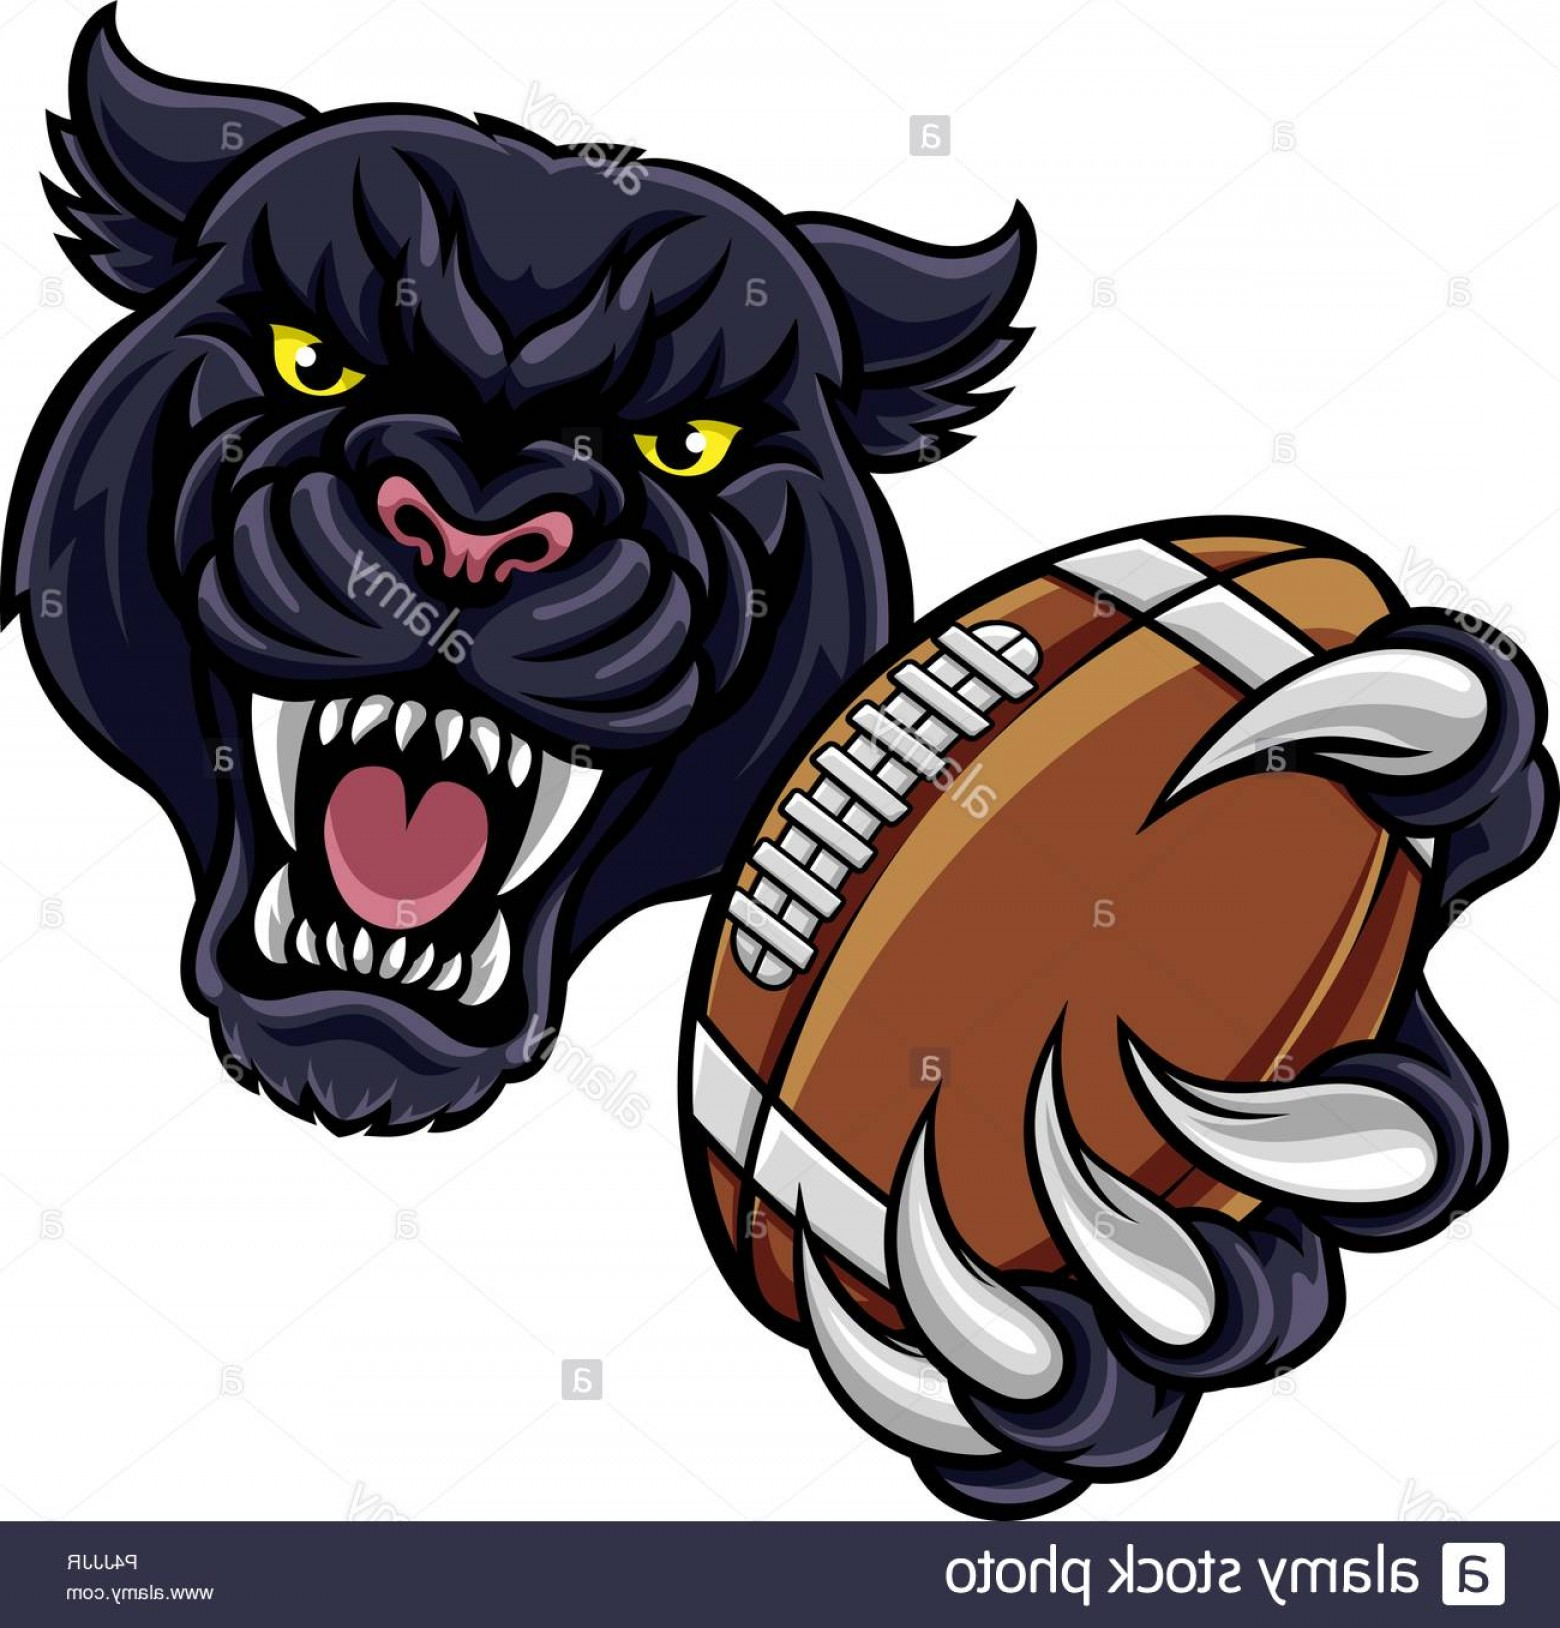 Panther Mascot Vector Sports: Black Panther American Football Mascot Image